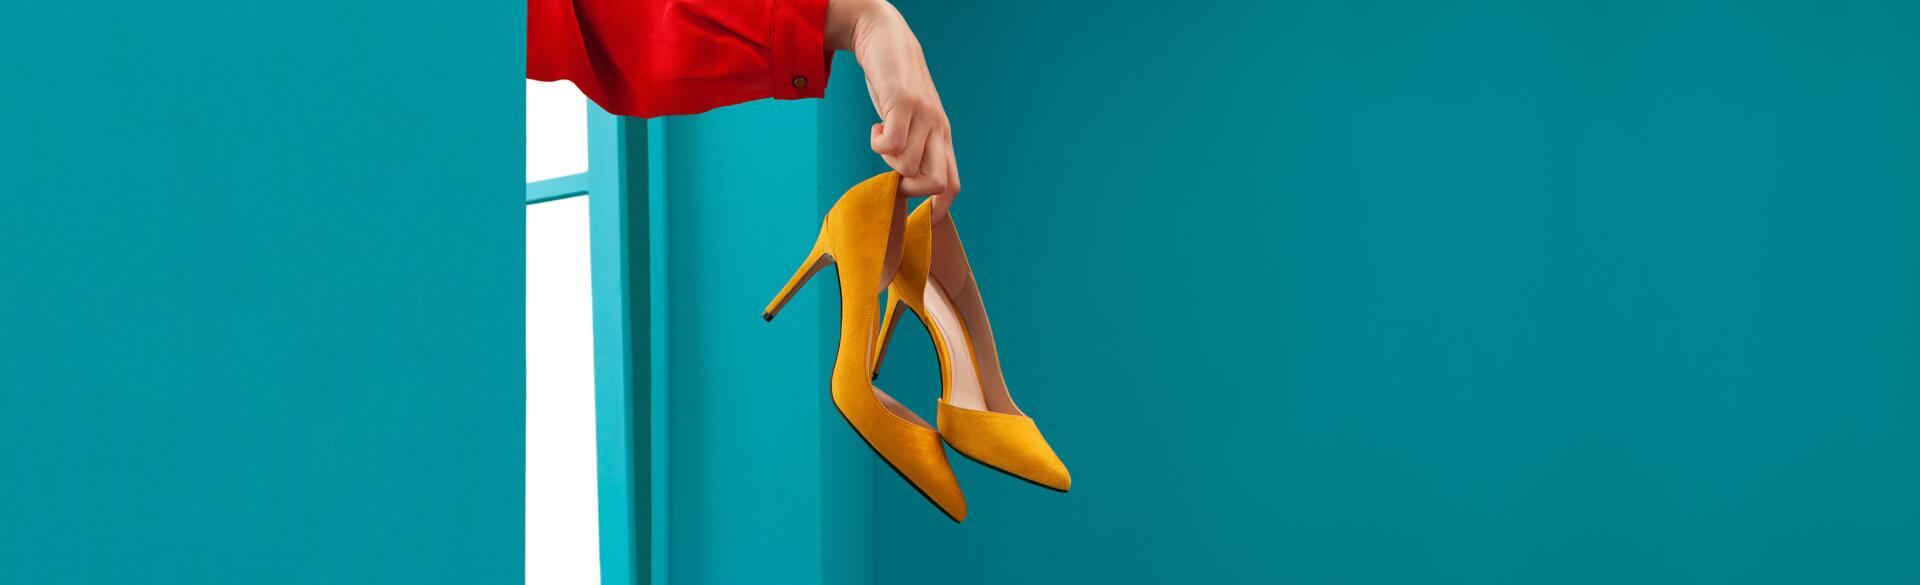 Woman throwing yellow high heels out a window